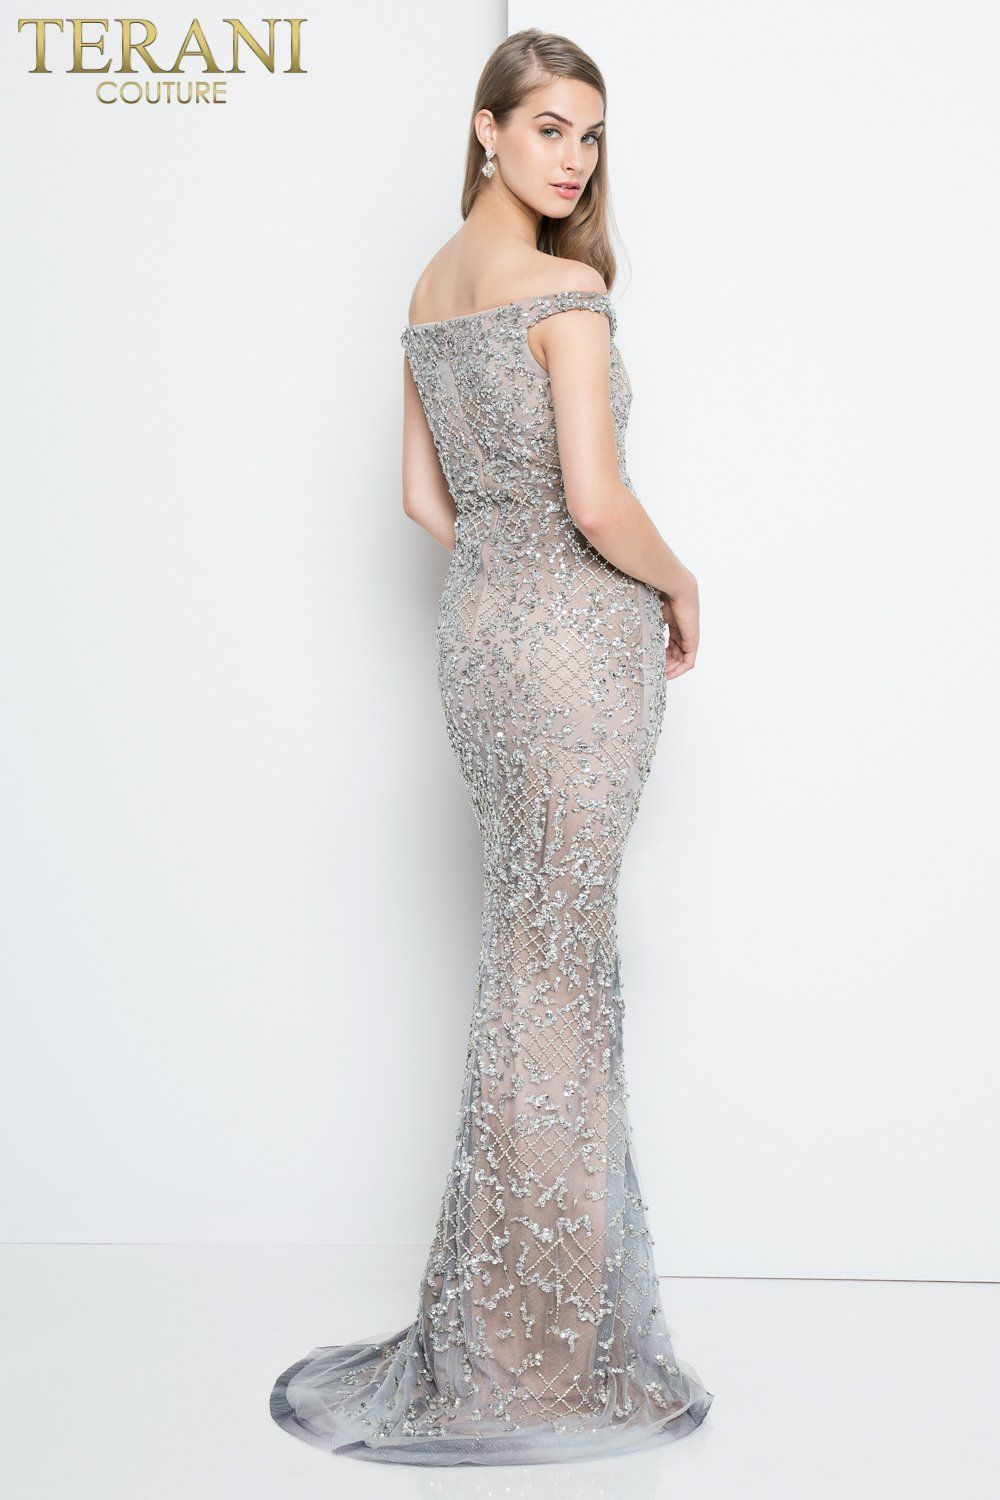 b6dd8f949f0 This Terani 1811P5261 evening gown is embellished with crystals throughout  the gown with off the shoulder sleeves and a high slit. AVAILABLE FOR PRE  ORDER  ...